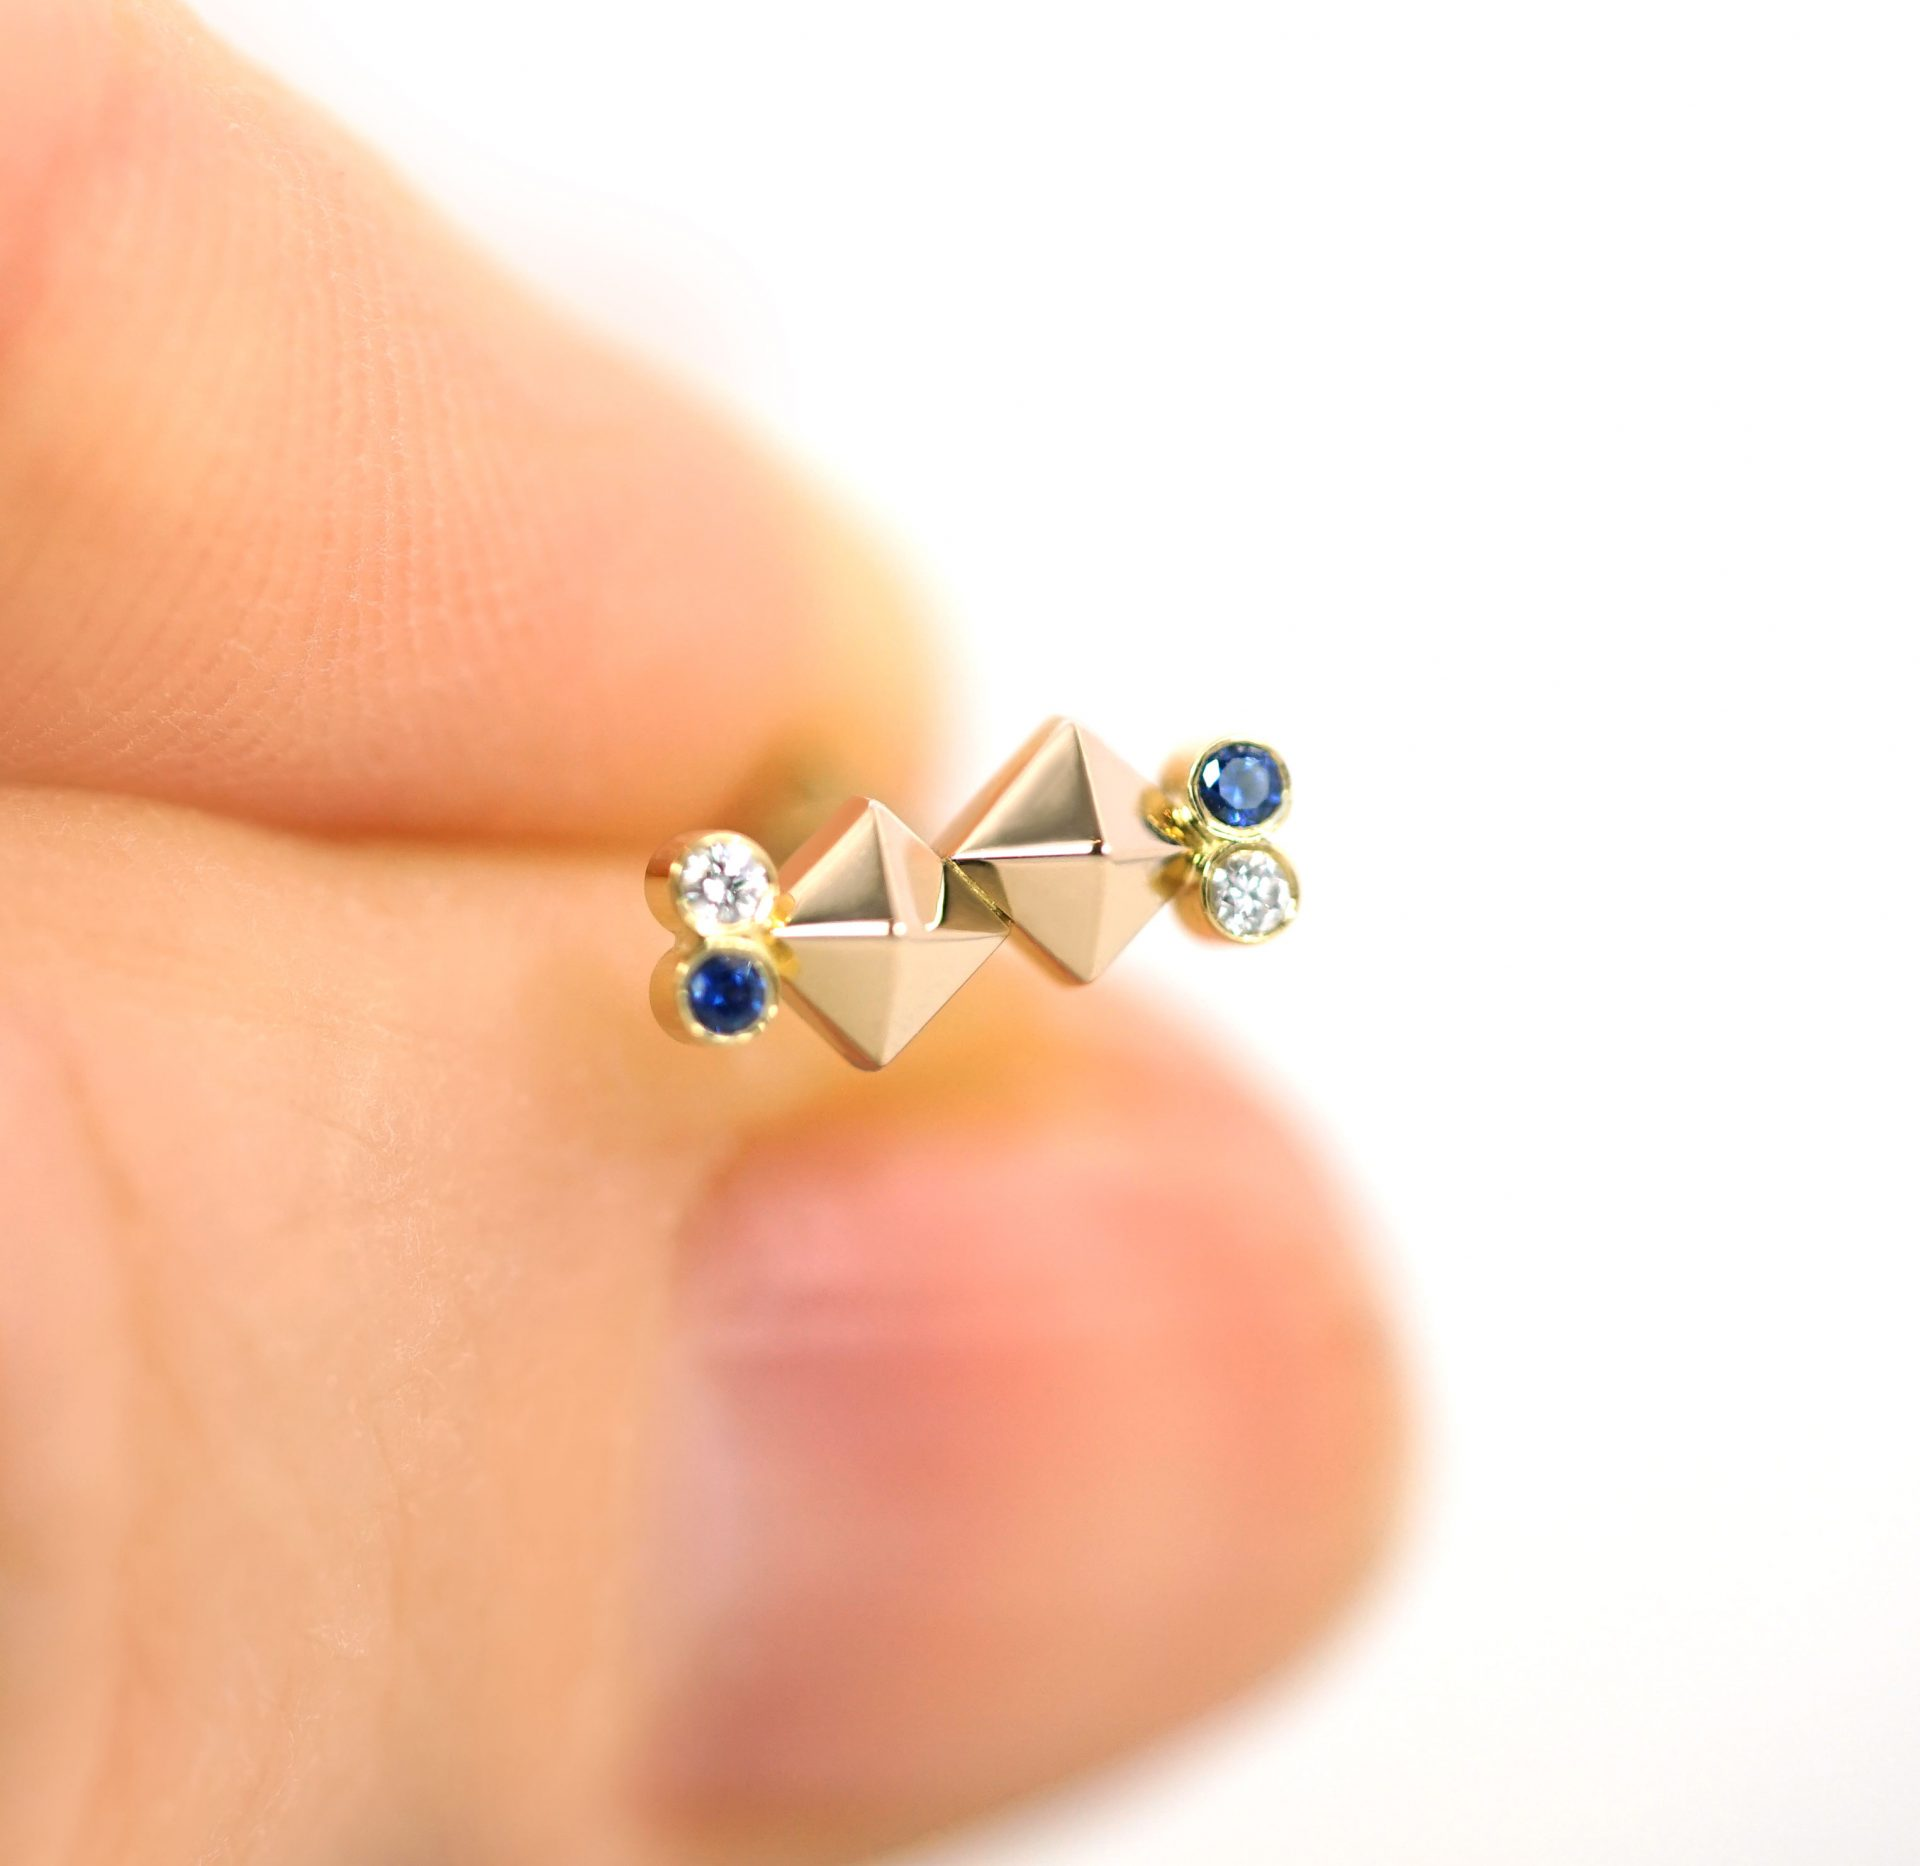 pisces-sign-zodiac-earring-18k-solid-yellow-gold-sapphire-diamond